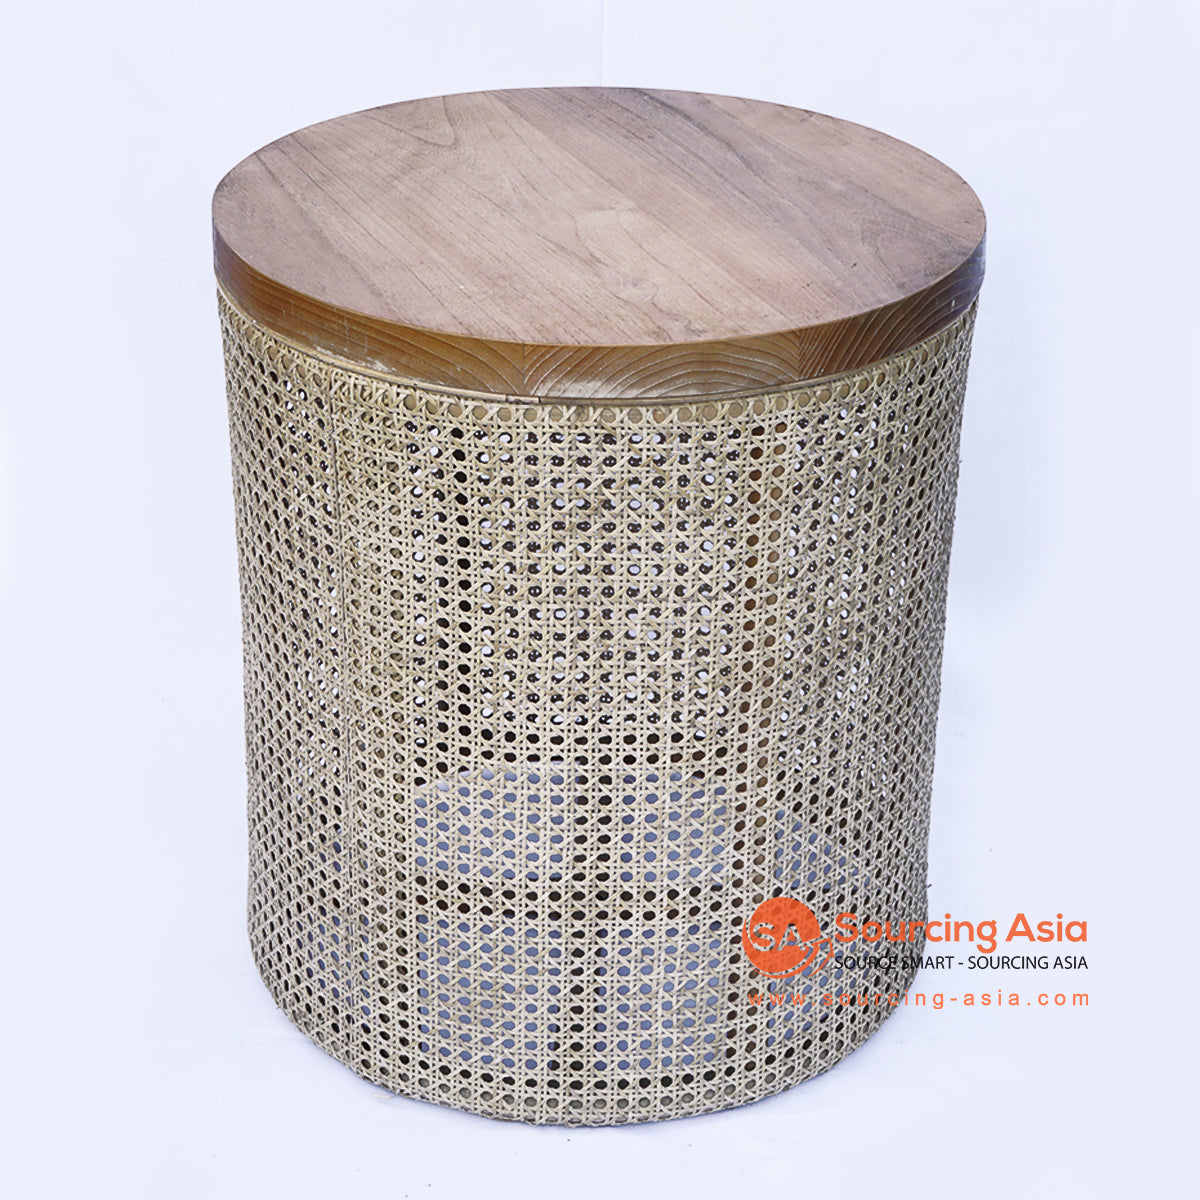 BNTC006-3 RATTAN WOVEN SIDE TABLE WOODEN TOP